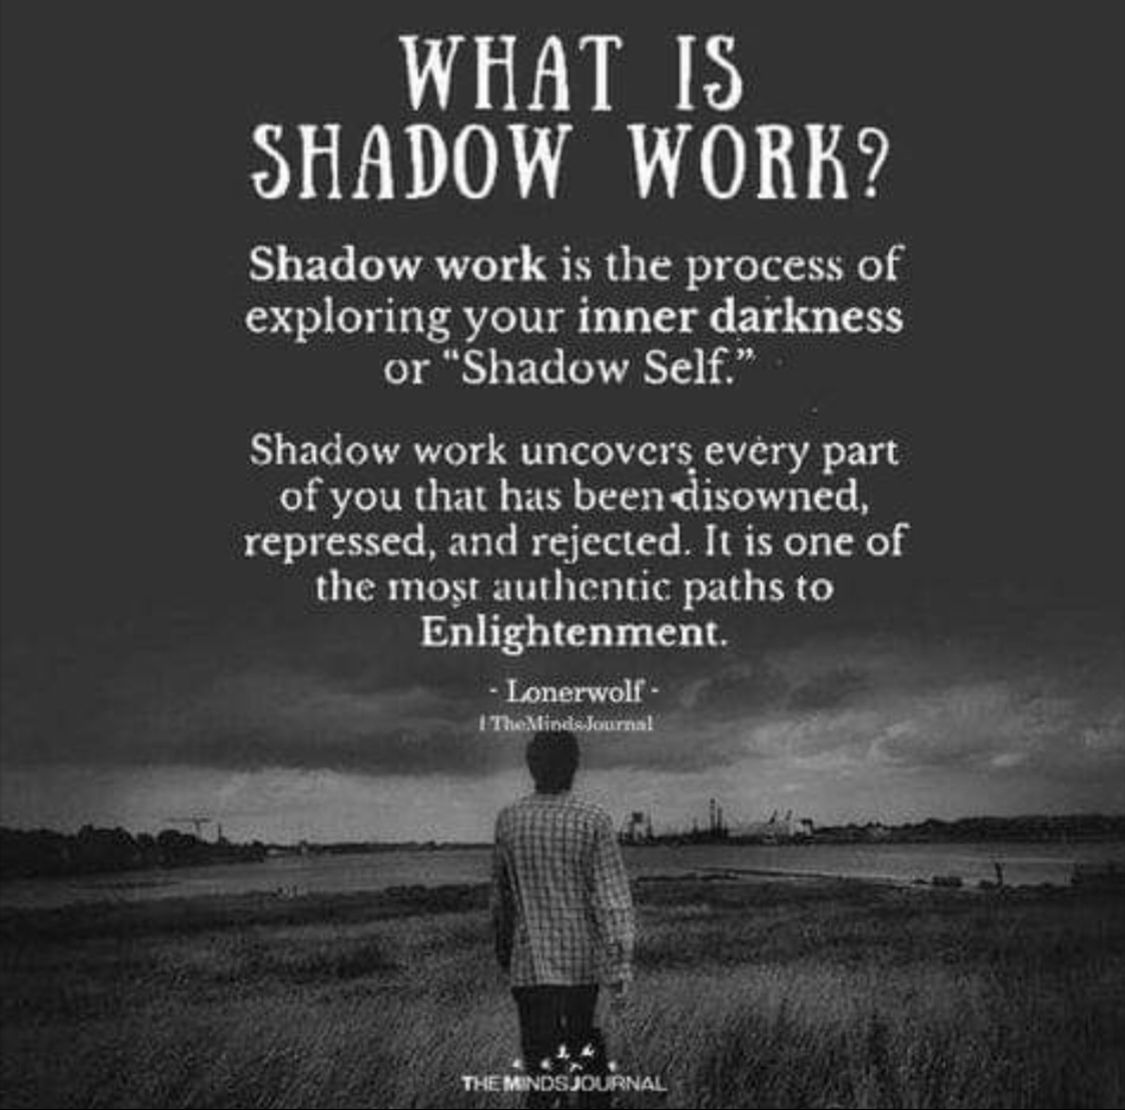 Pin by DAZEY MOON on Connected Shadow work spiritual